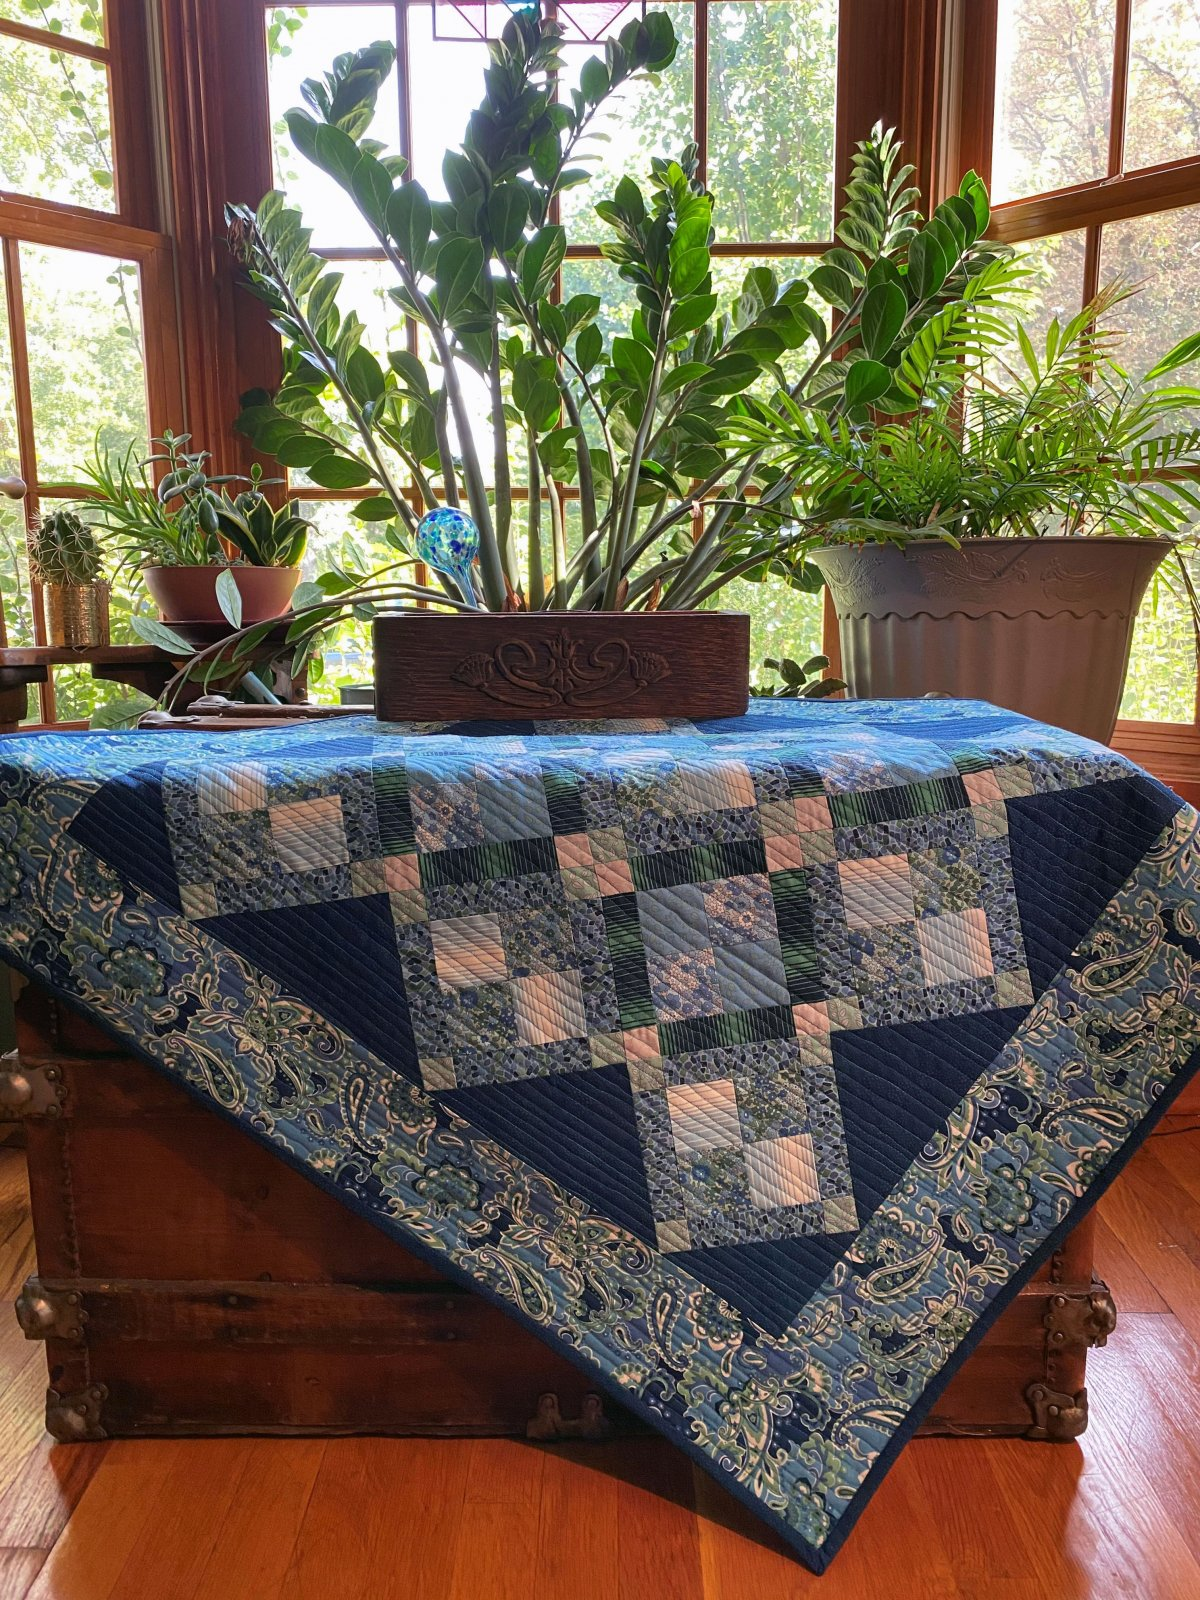 Simply Squared quilt kit